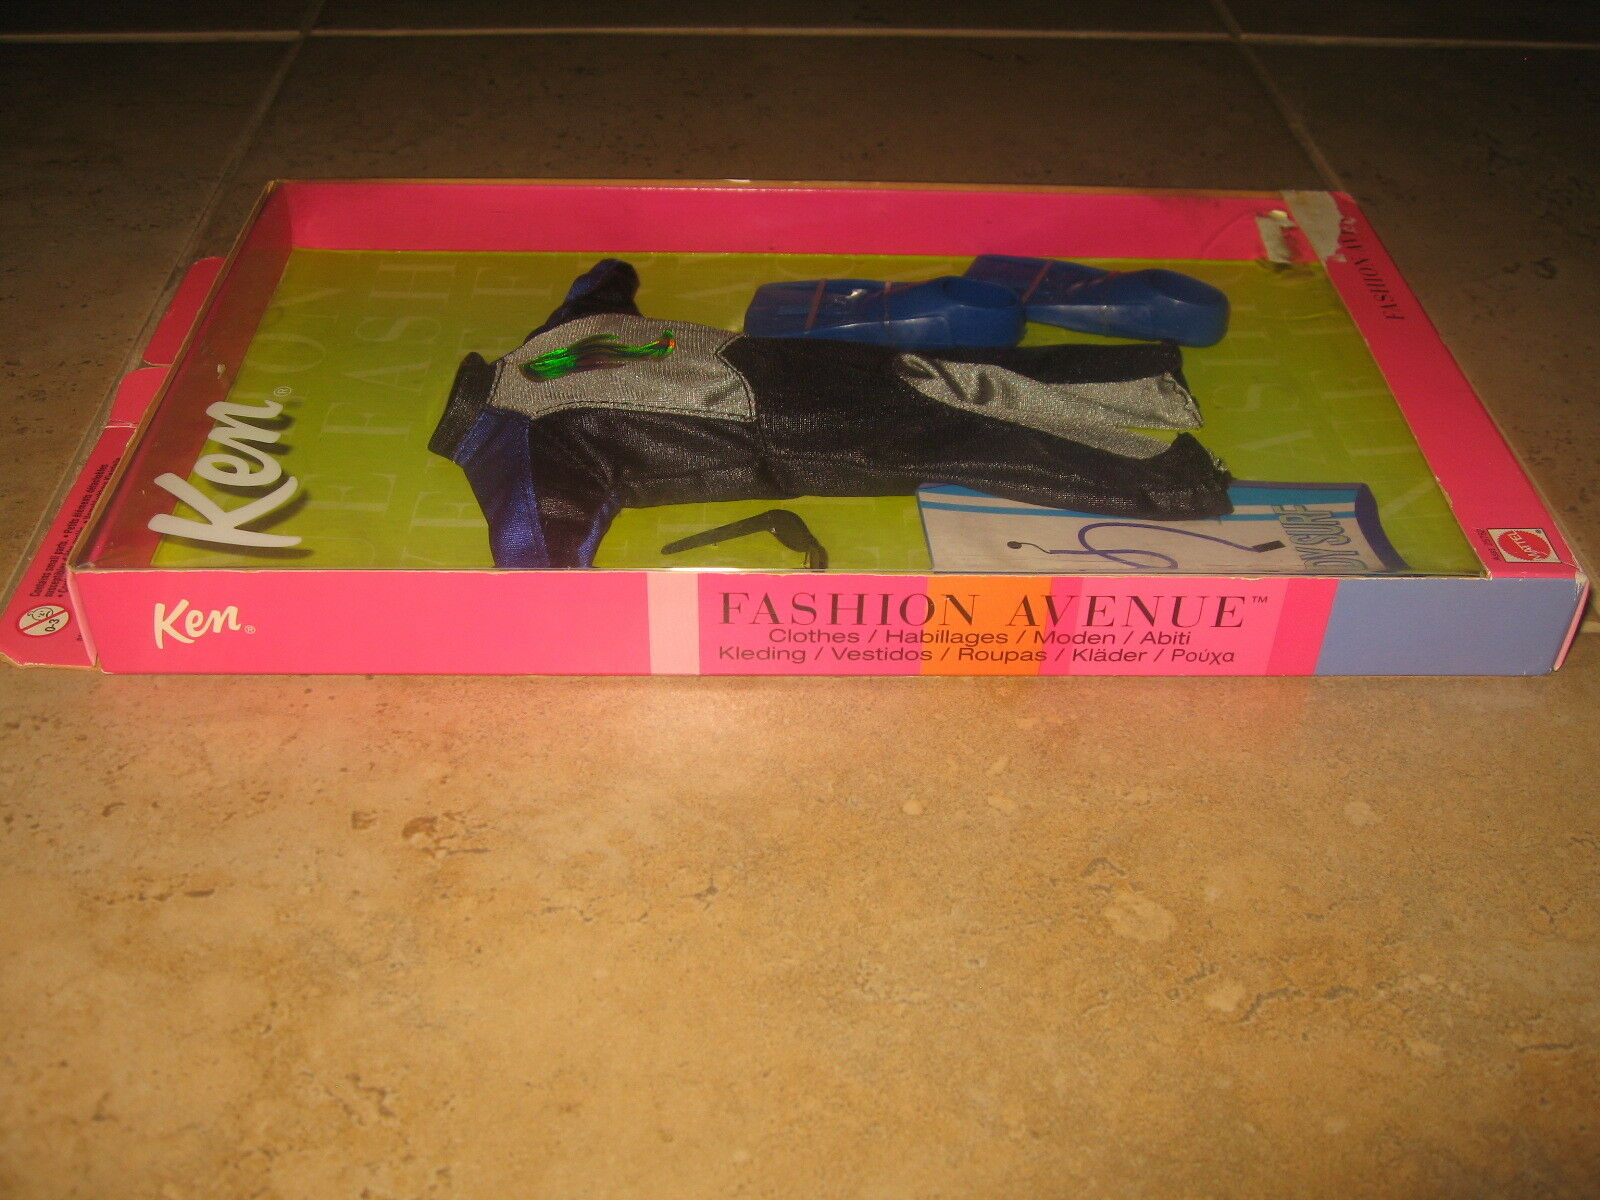 Ken Wave Slayer Fashion   Clothes Mattel Asst. 25752 25752 25752 Fashion Avenue 2000 NEW a7f9f5